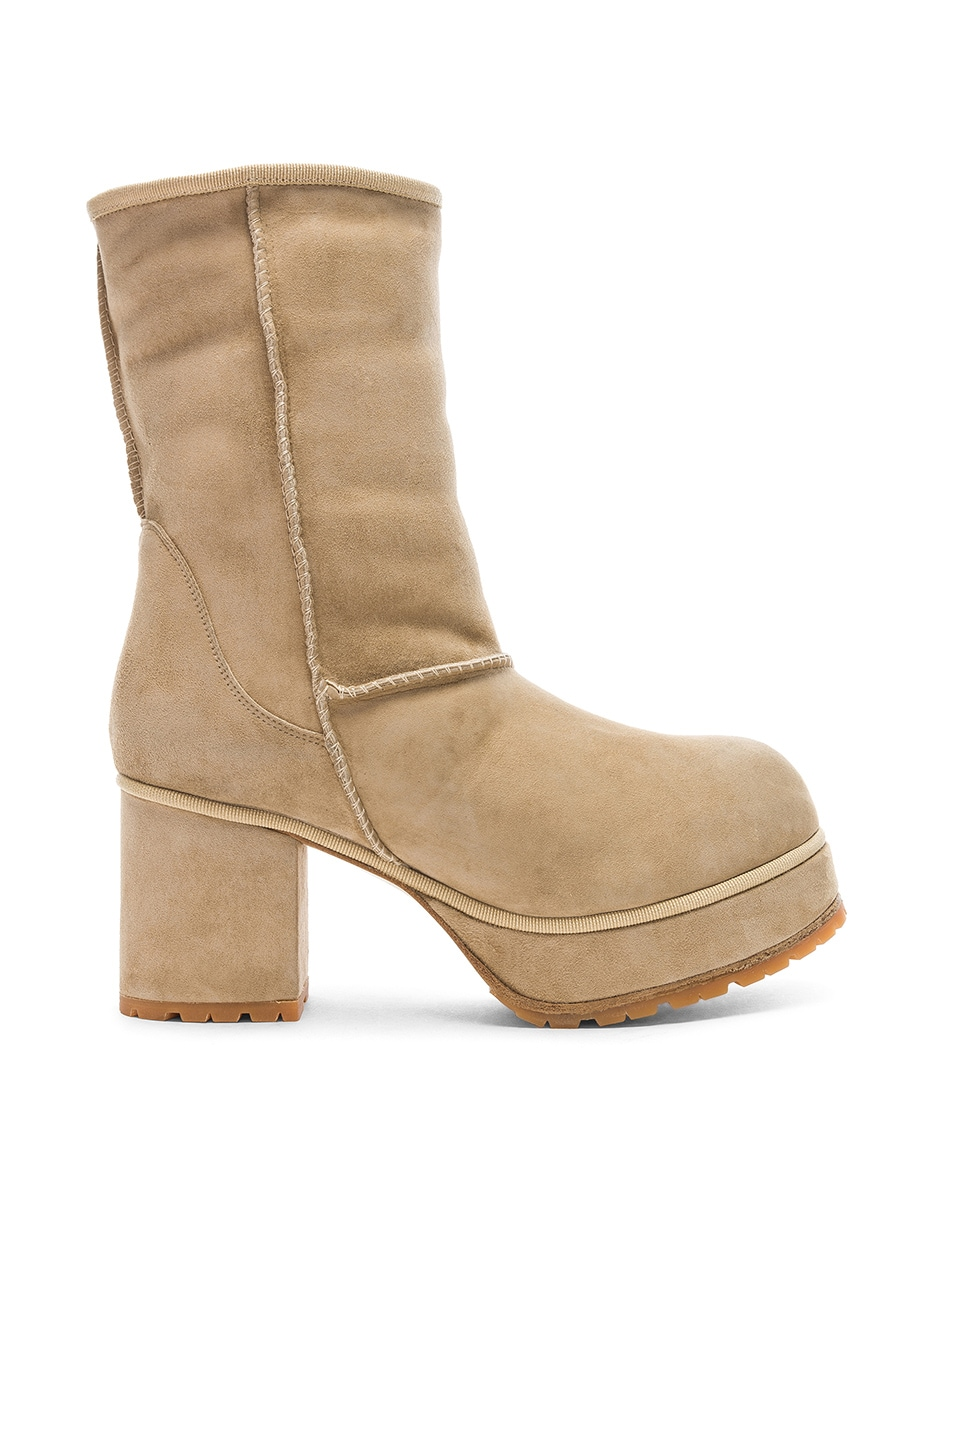 Image 1 of R13 Sheep Shearling Boots in Two Tone Tan